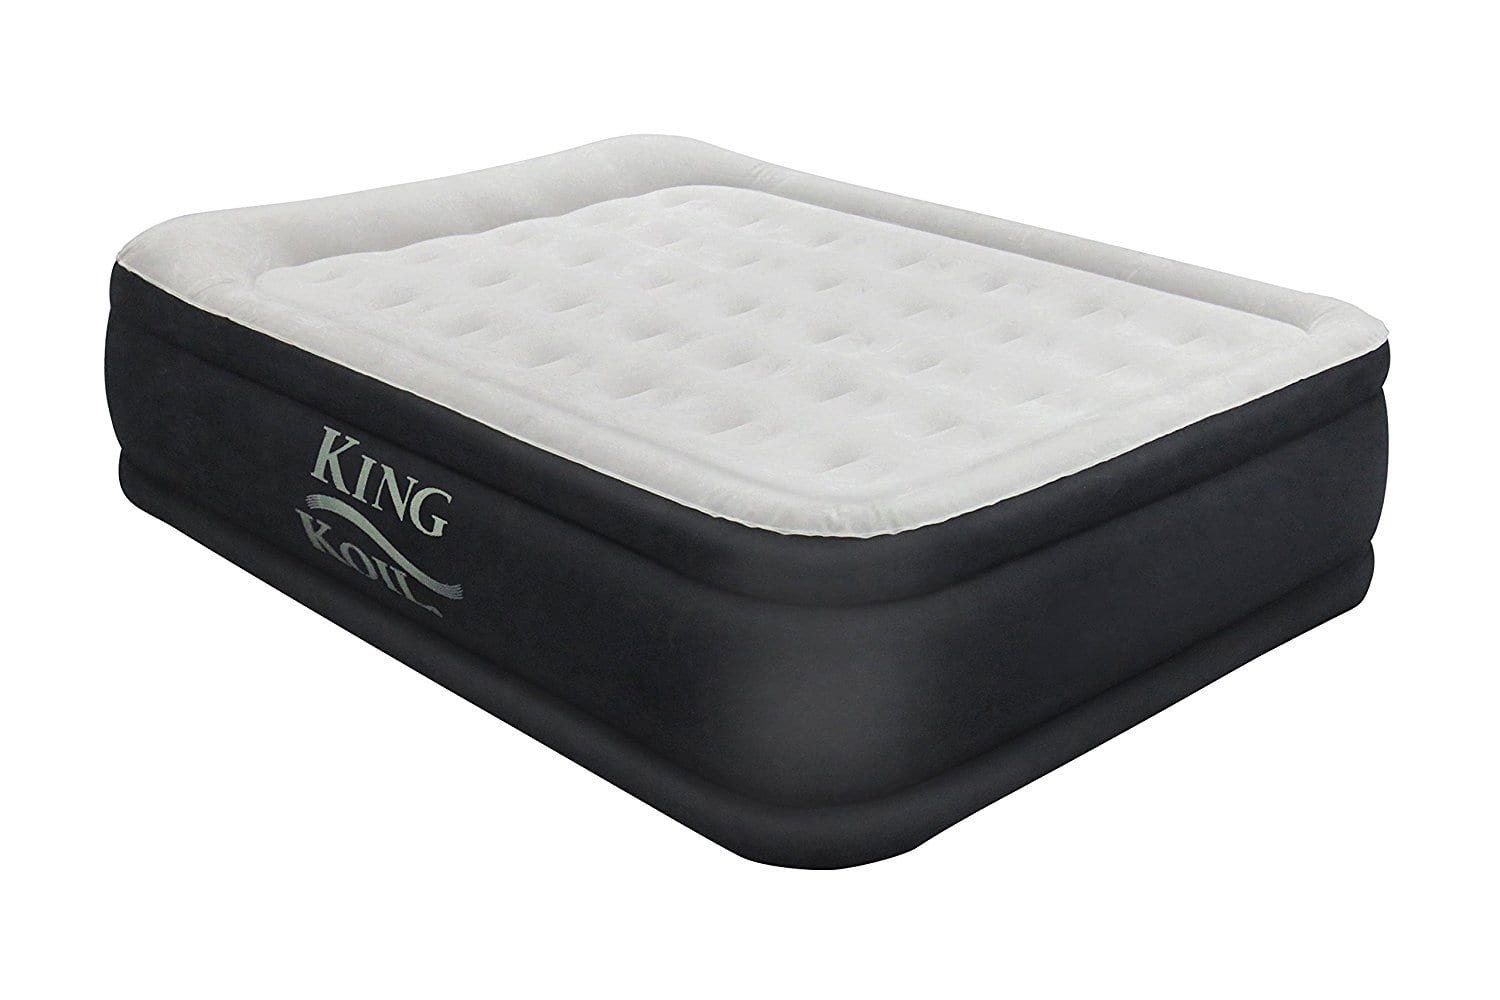 The Best Air Mattress Brands And Buying Guide For 2019